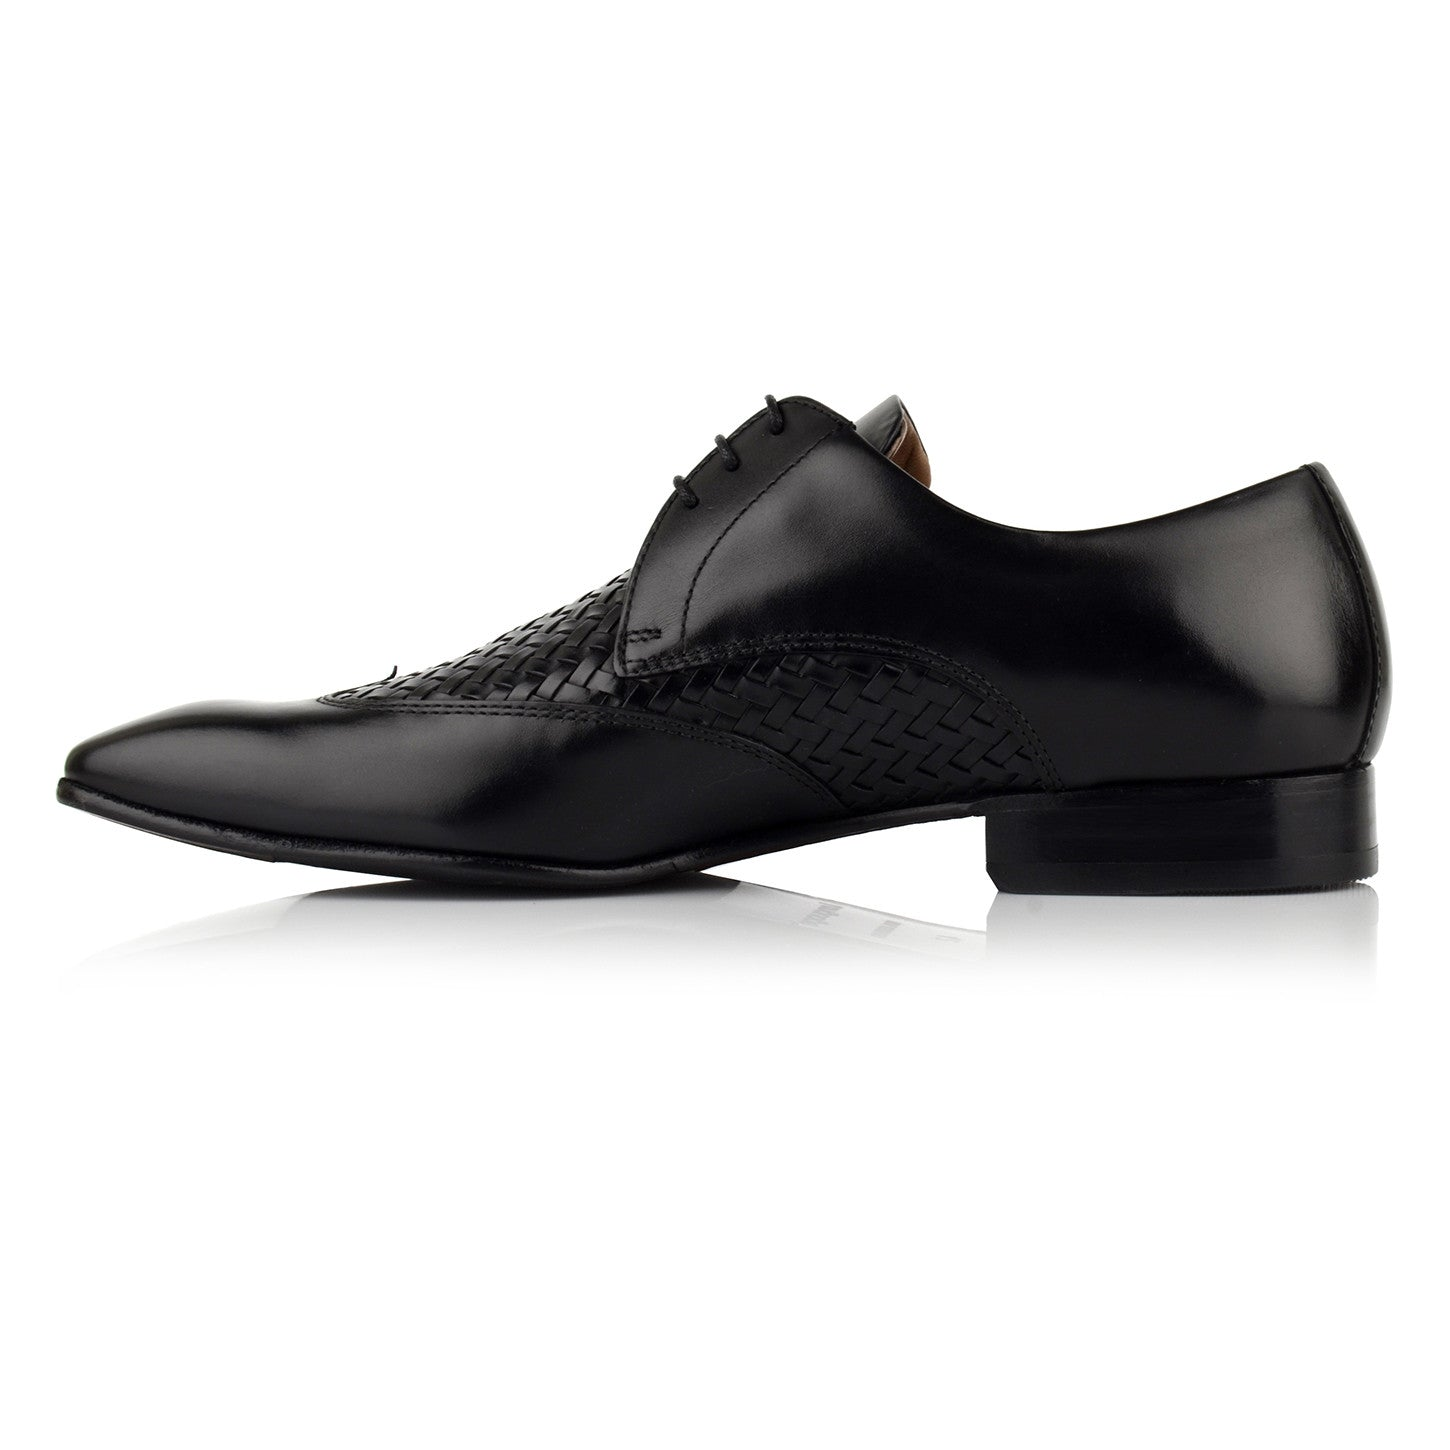 LM511 - Language Entwin Men's Dress Black Derby Shoes